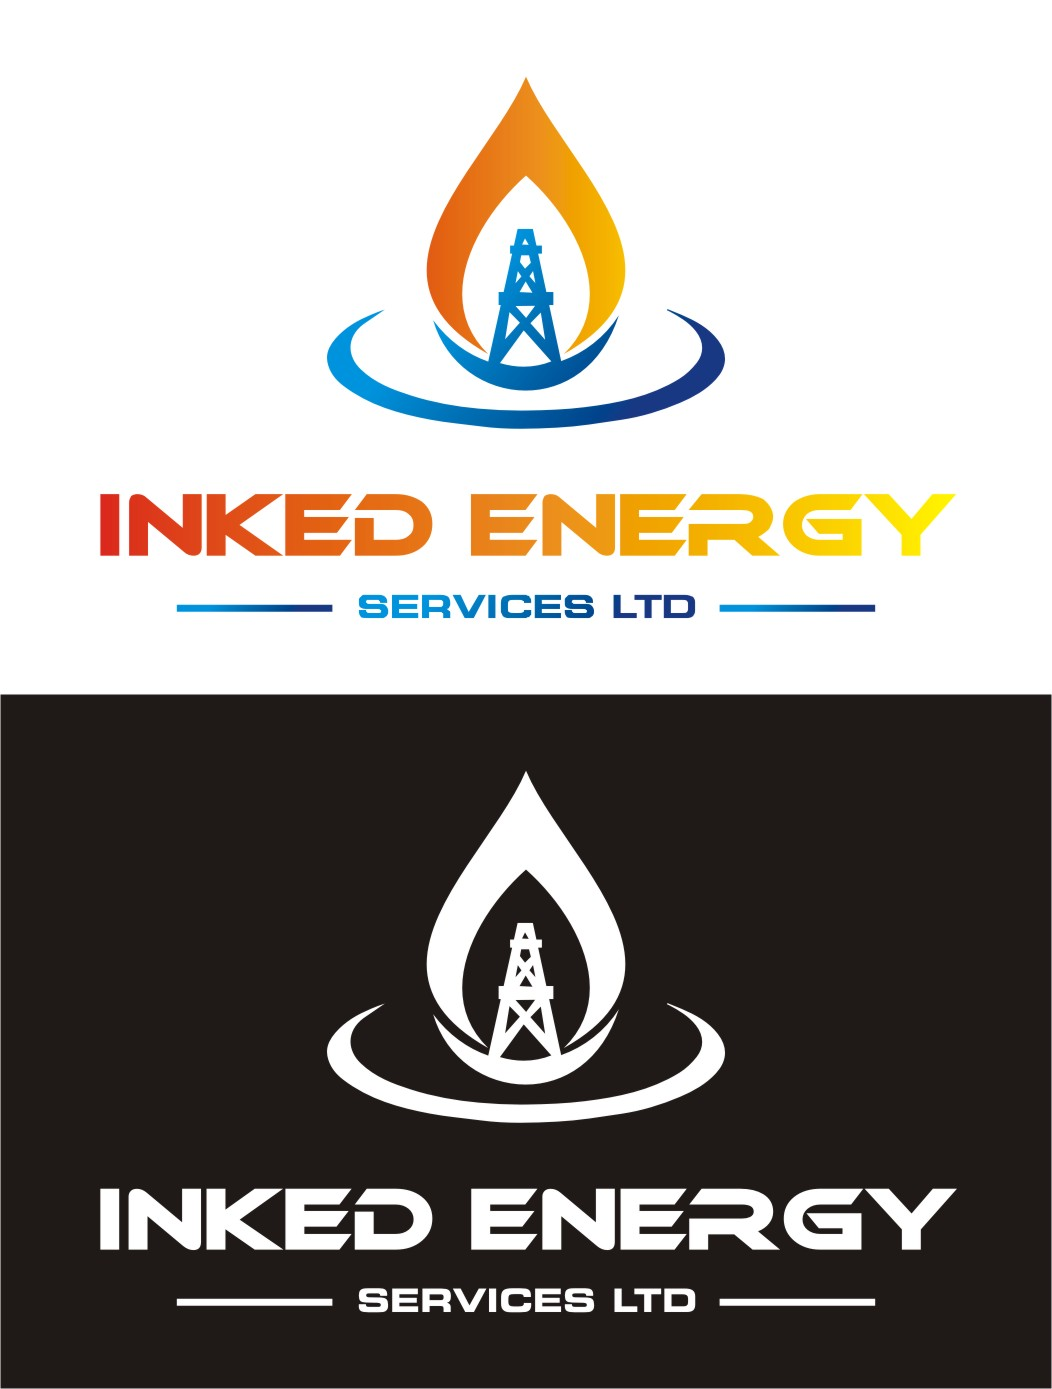 Logo Design by Spider Graphics - Entry No. 173 in the Logo Design Contest Creative Logo Design for INKED ENERGY SERVICES LTD.